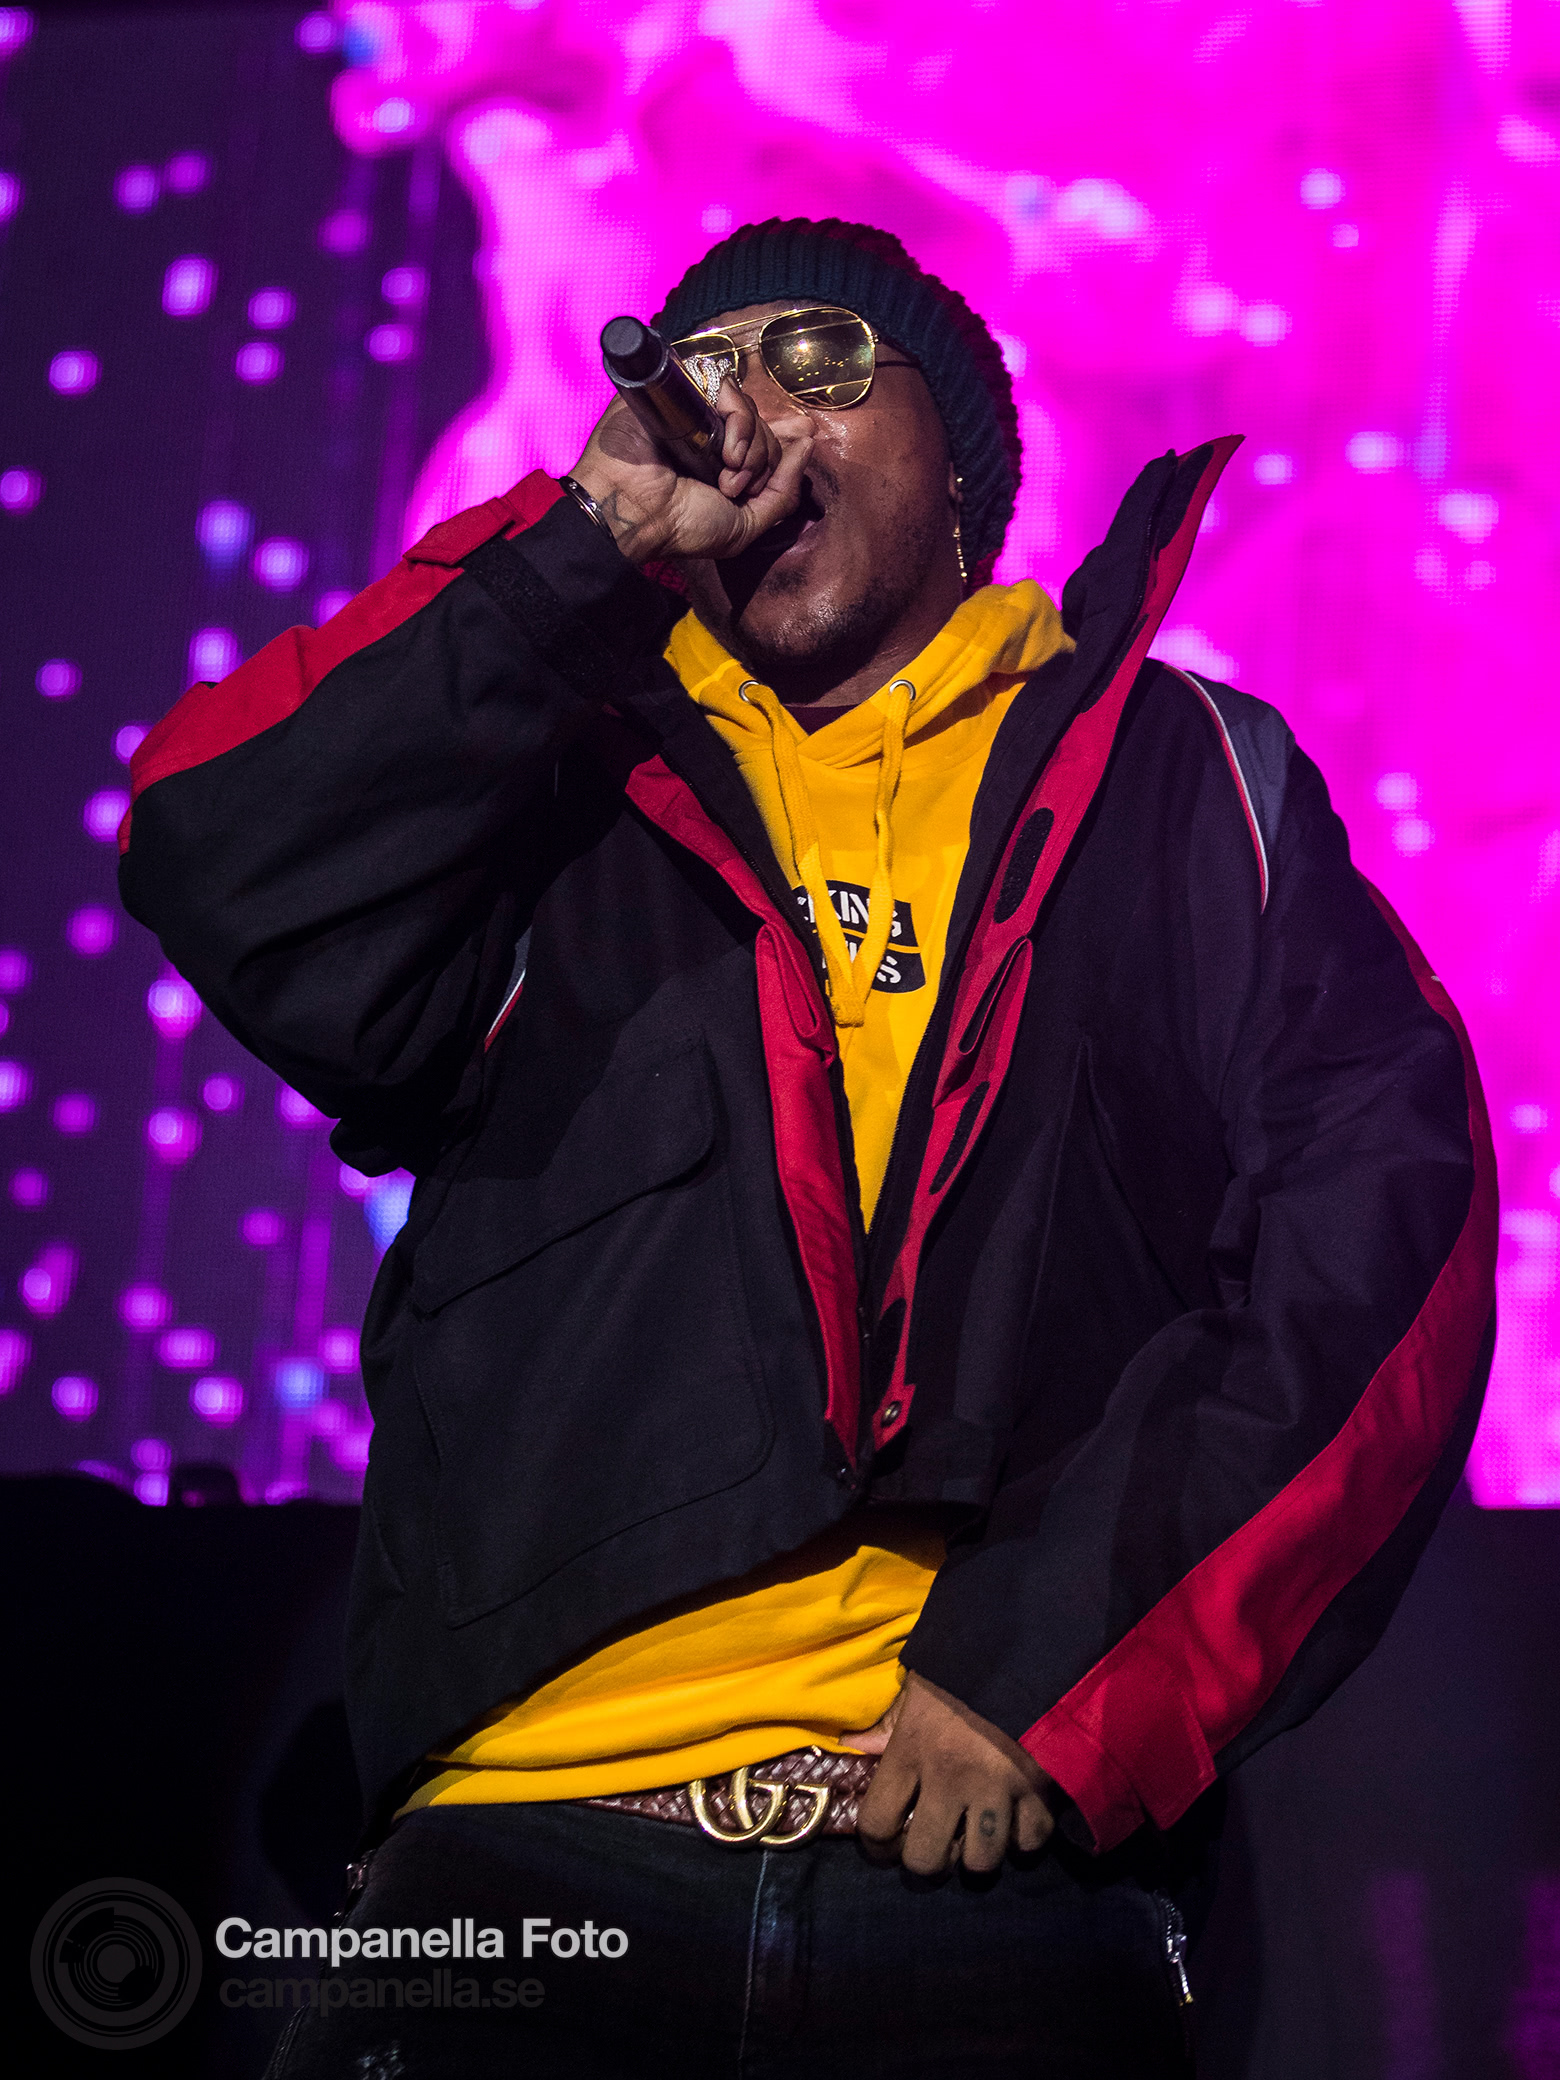 Future performs in Stockholm - Michael Campanella Photography